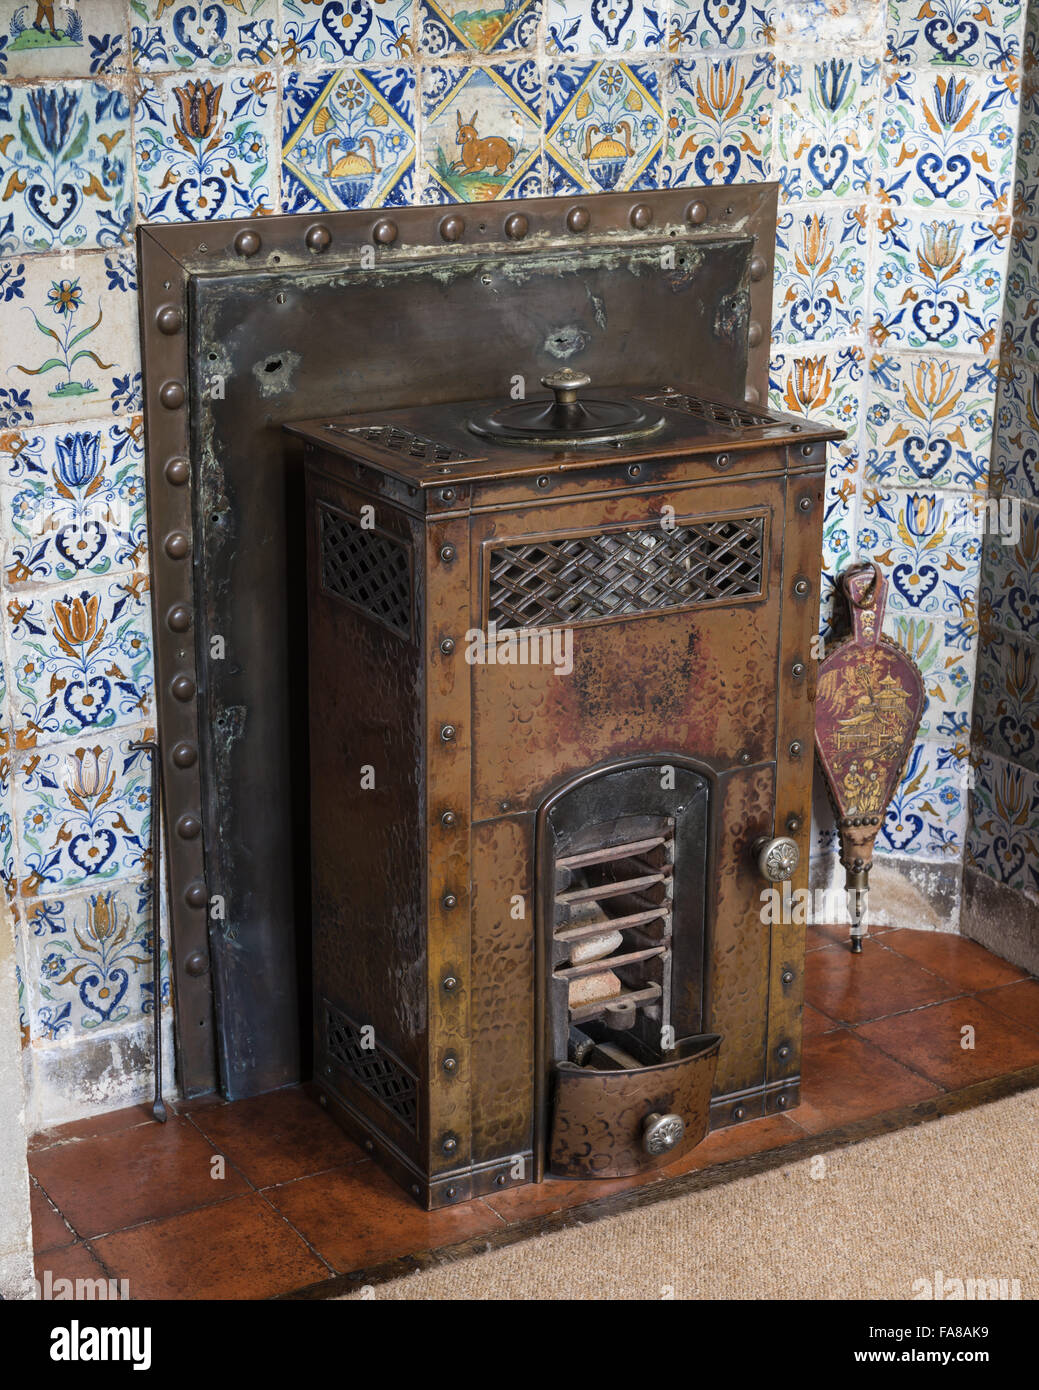 A pither stove in the fireplace in the Dining Room at Bateman's ...